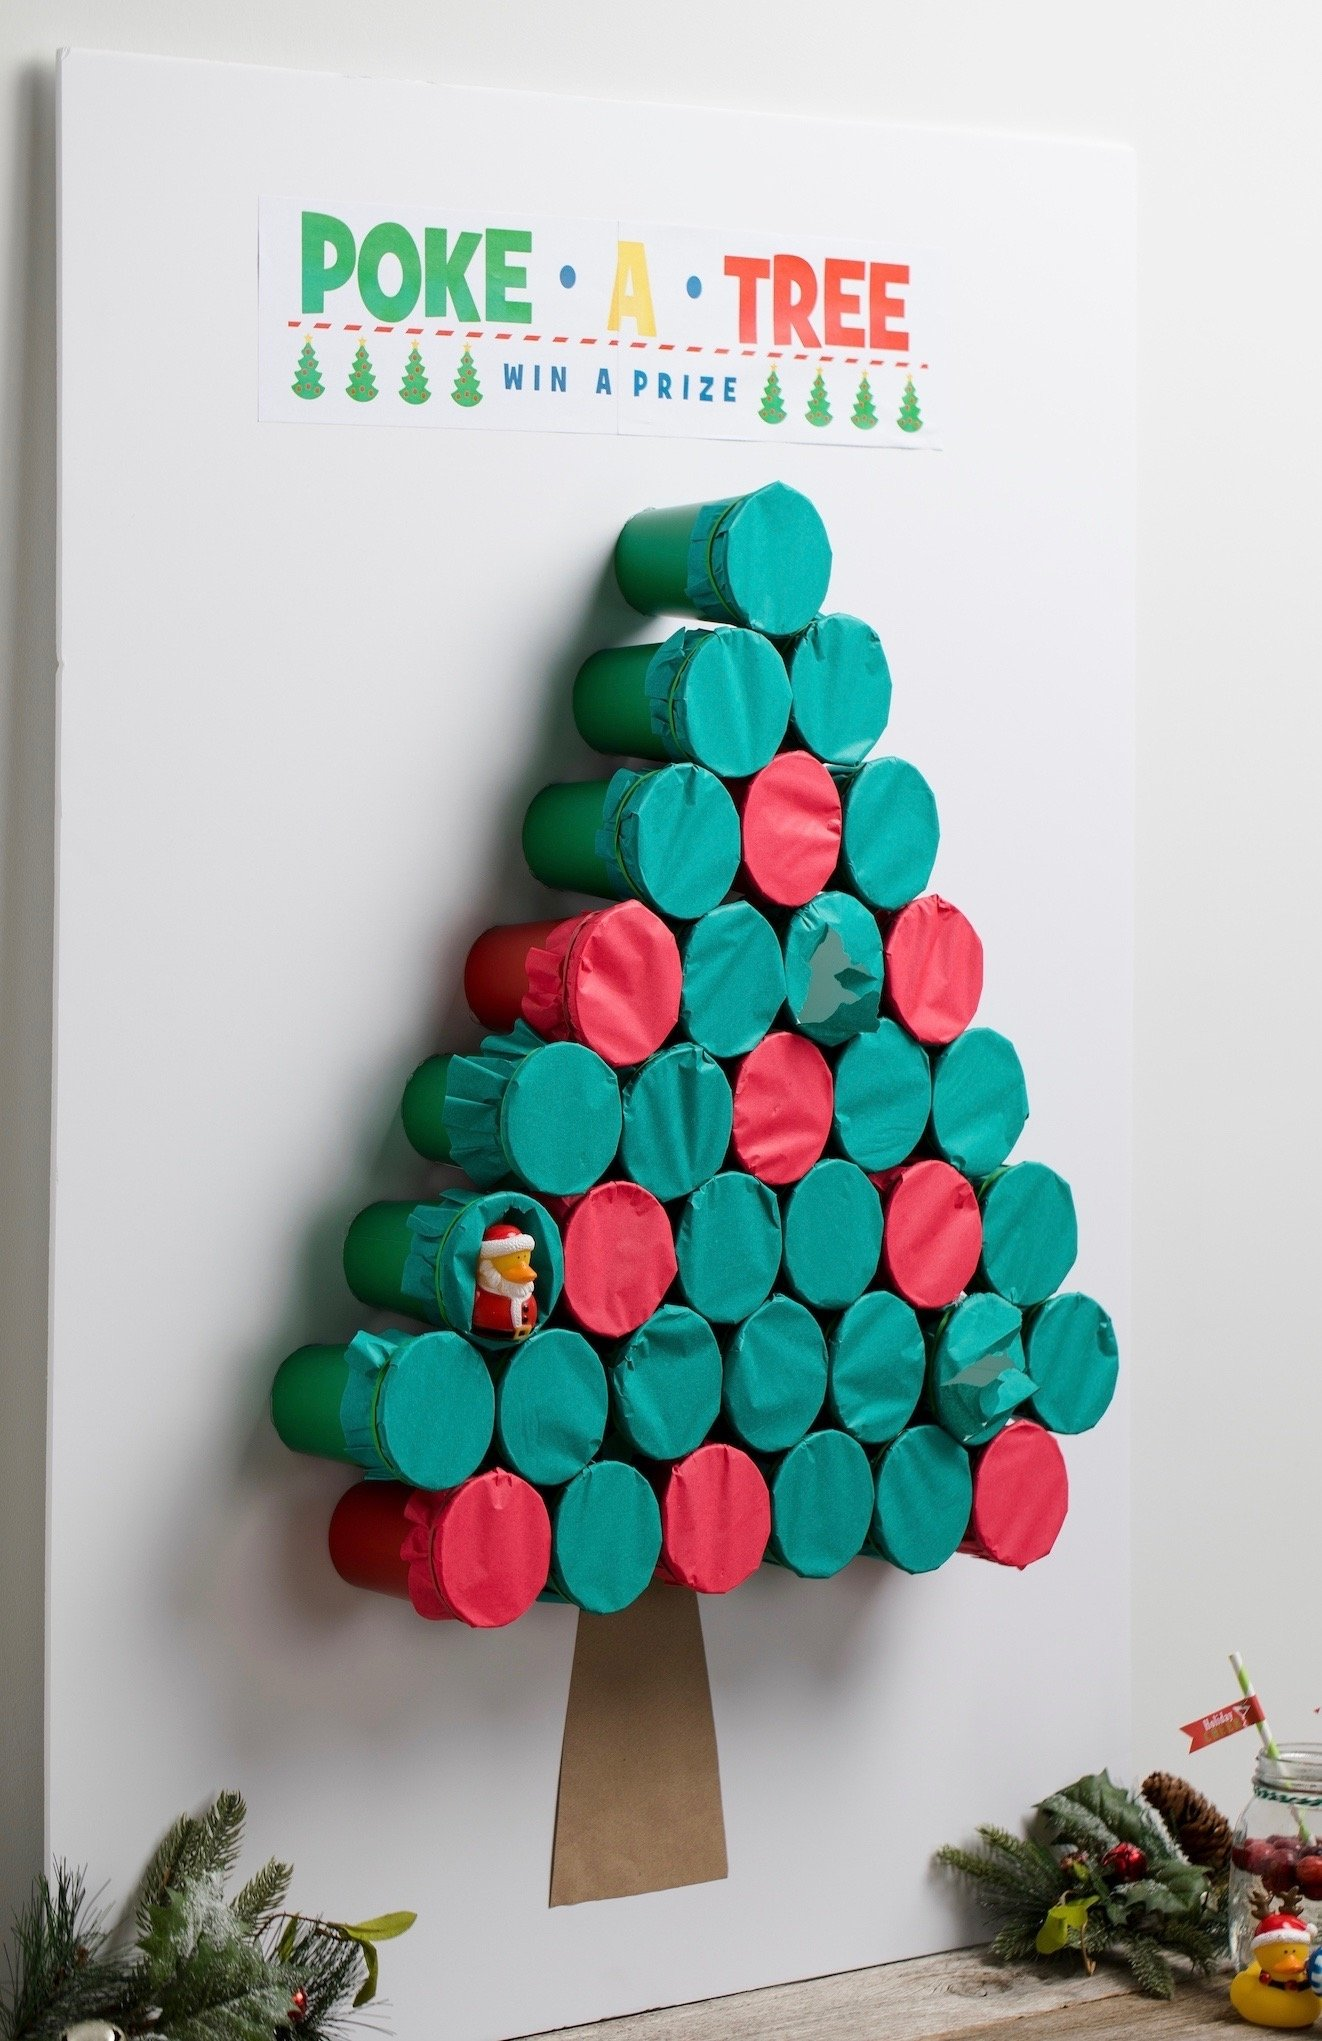 10 Stunning Christmas Picture Ideas For Children christmas tree decoration ideas idolza 2021